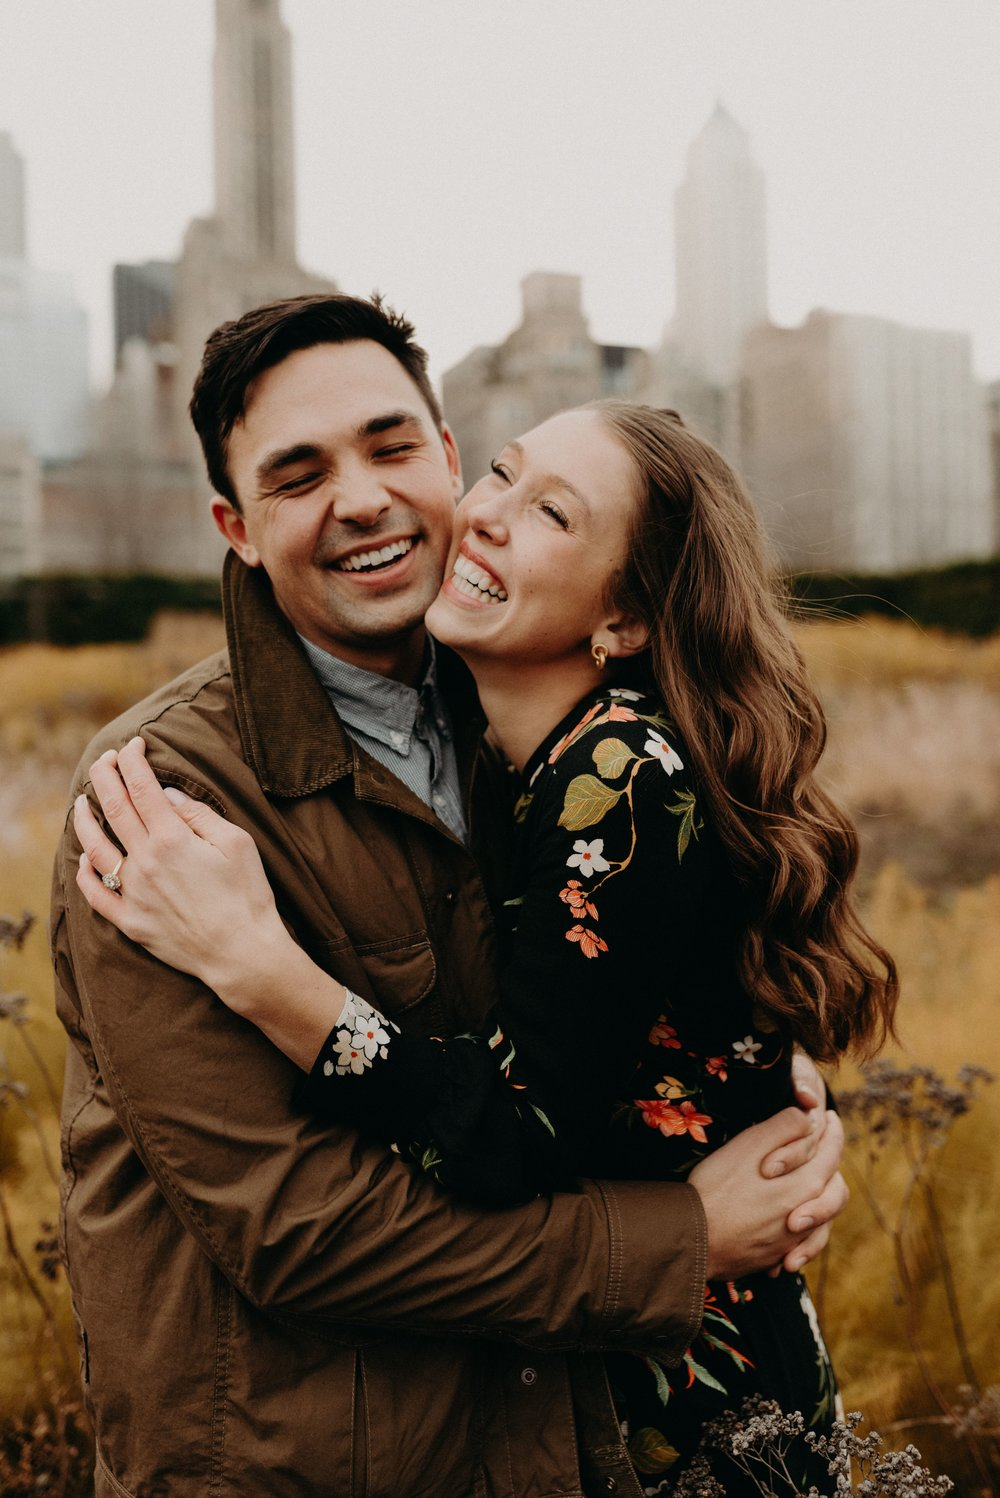 Jess + Jared | Chicago Engagement Photos